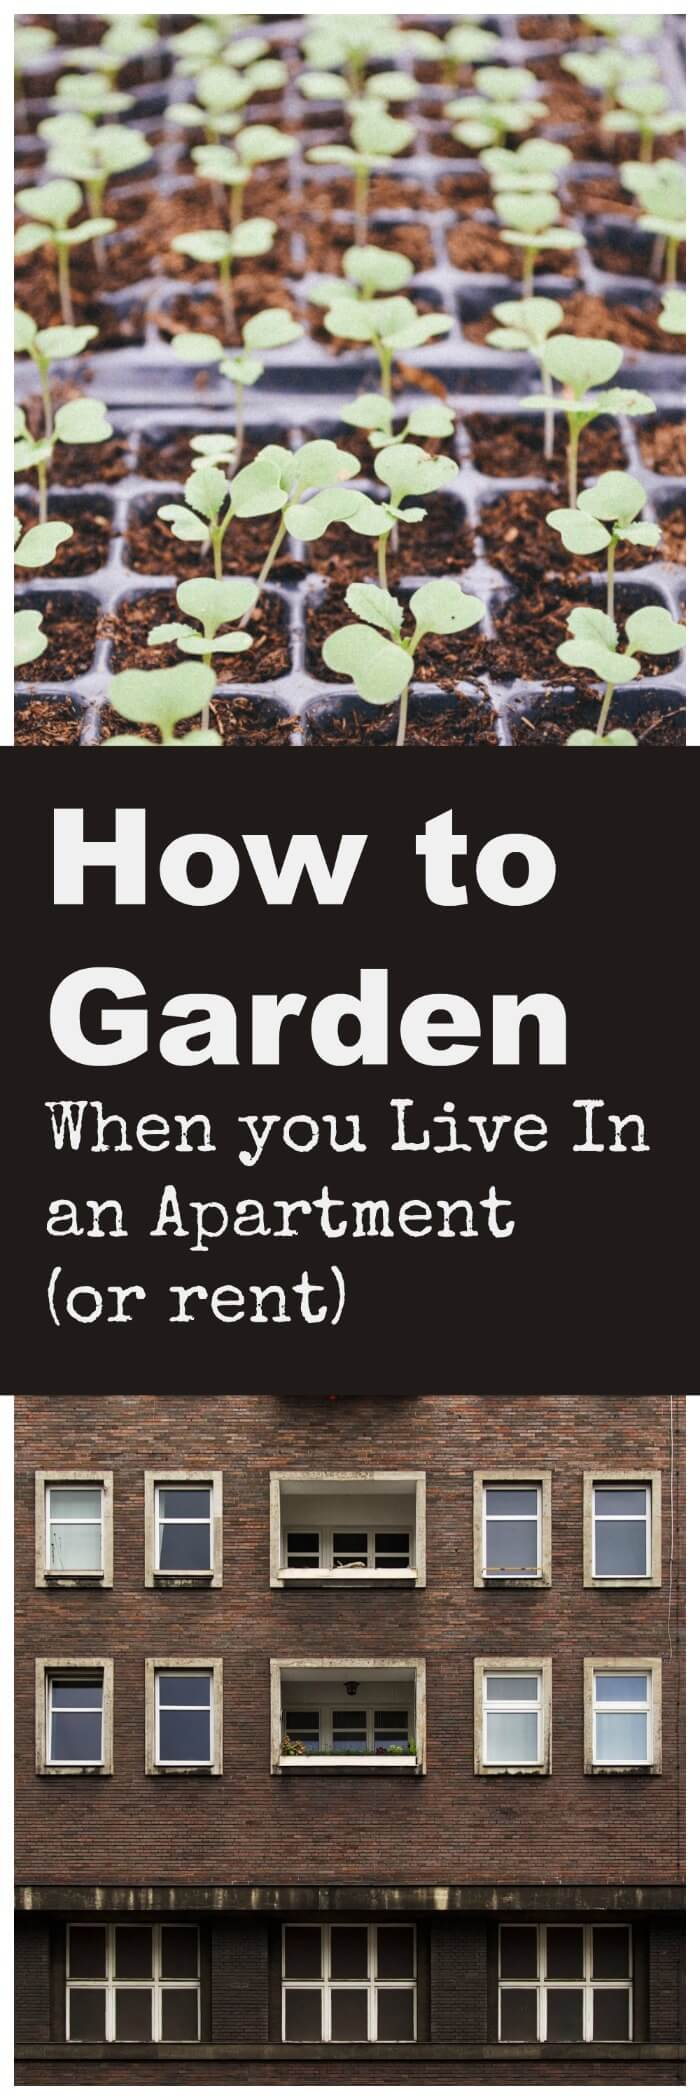 how-to-garden-when-you-live-in-an-apartment